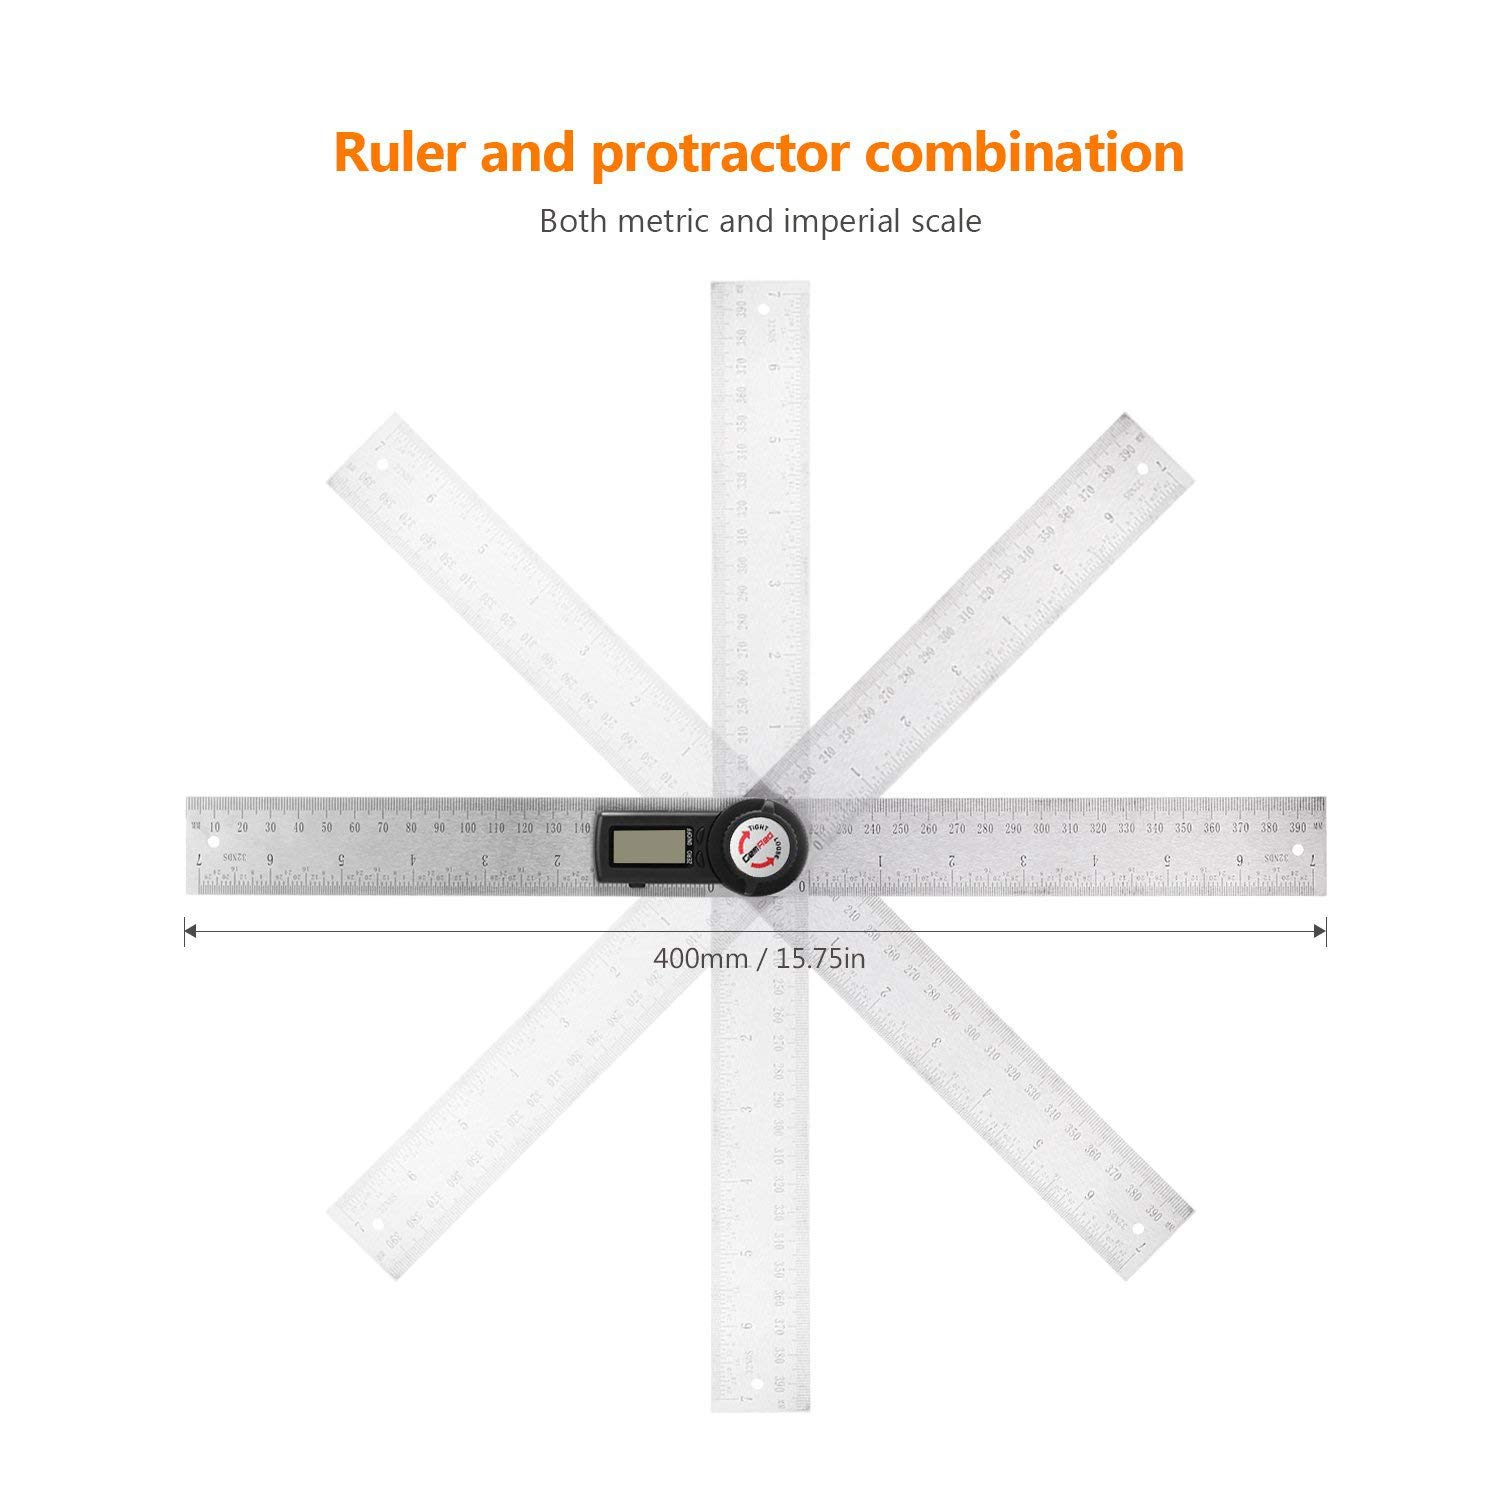 Gocheer Digital Angle Ruler, LCD Display Protractor Angle Finder, Stainless Steel 400mm / 14 inches, 360°Angle Measure, Electronic Level Gauge